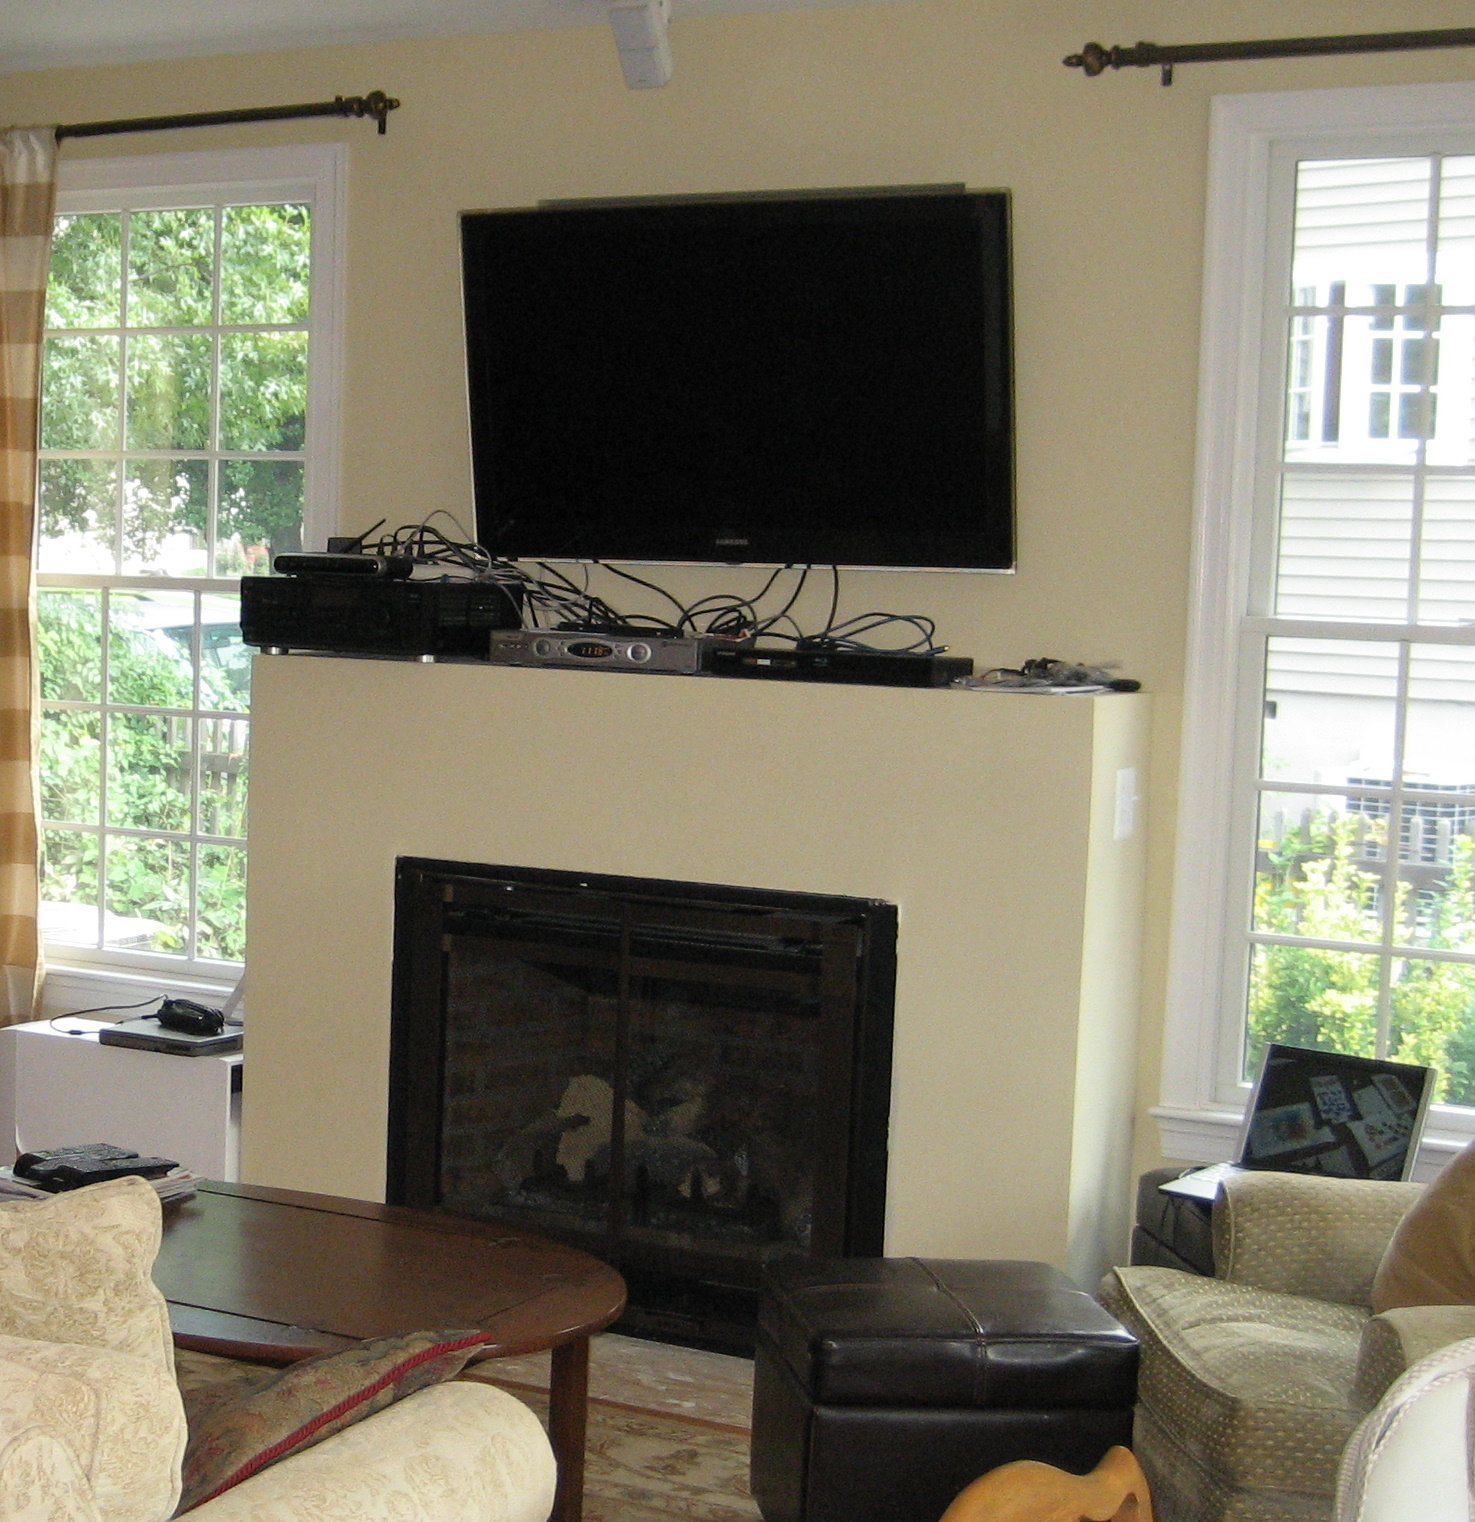 Remodelaholic | Fireplace Mantel Remodel with White Molding